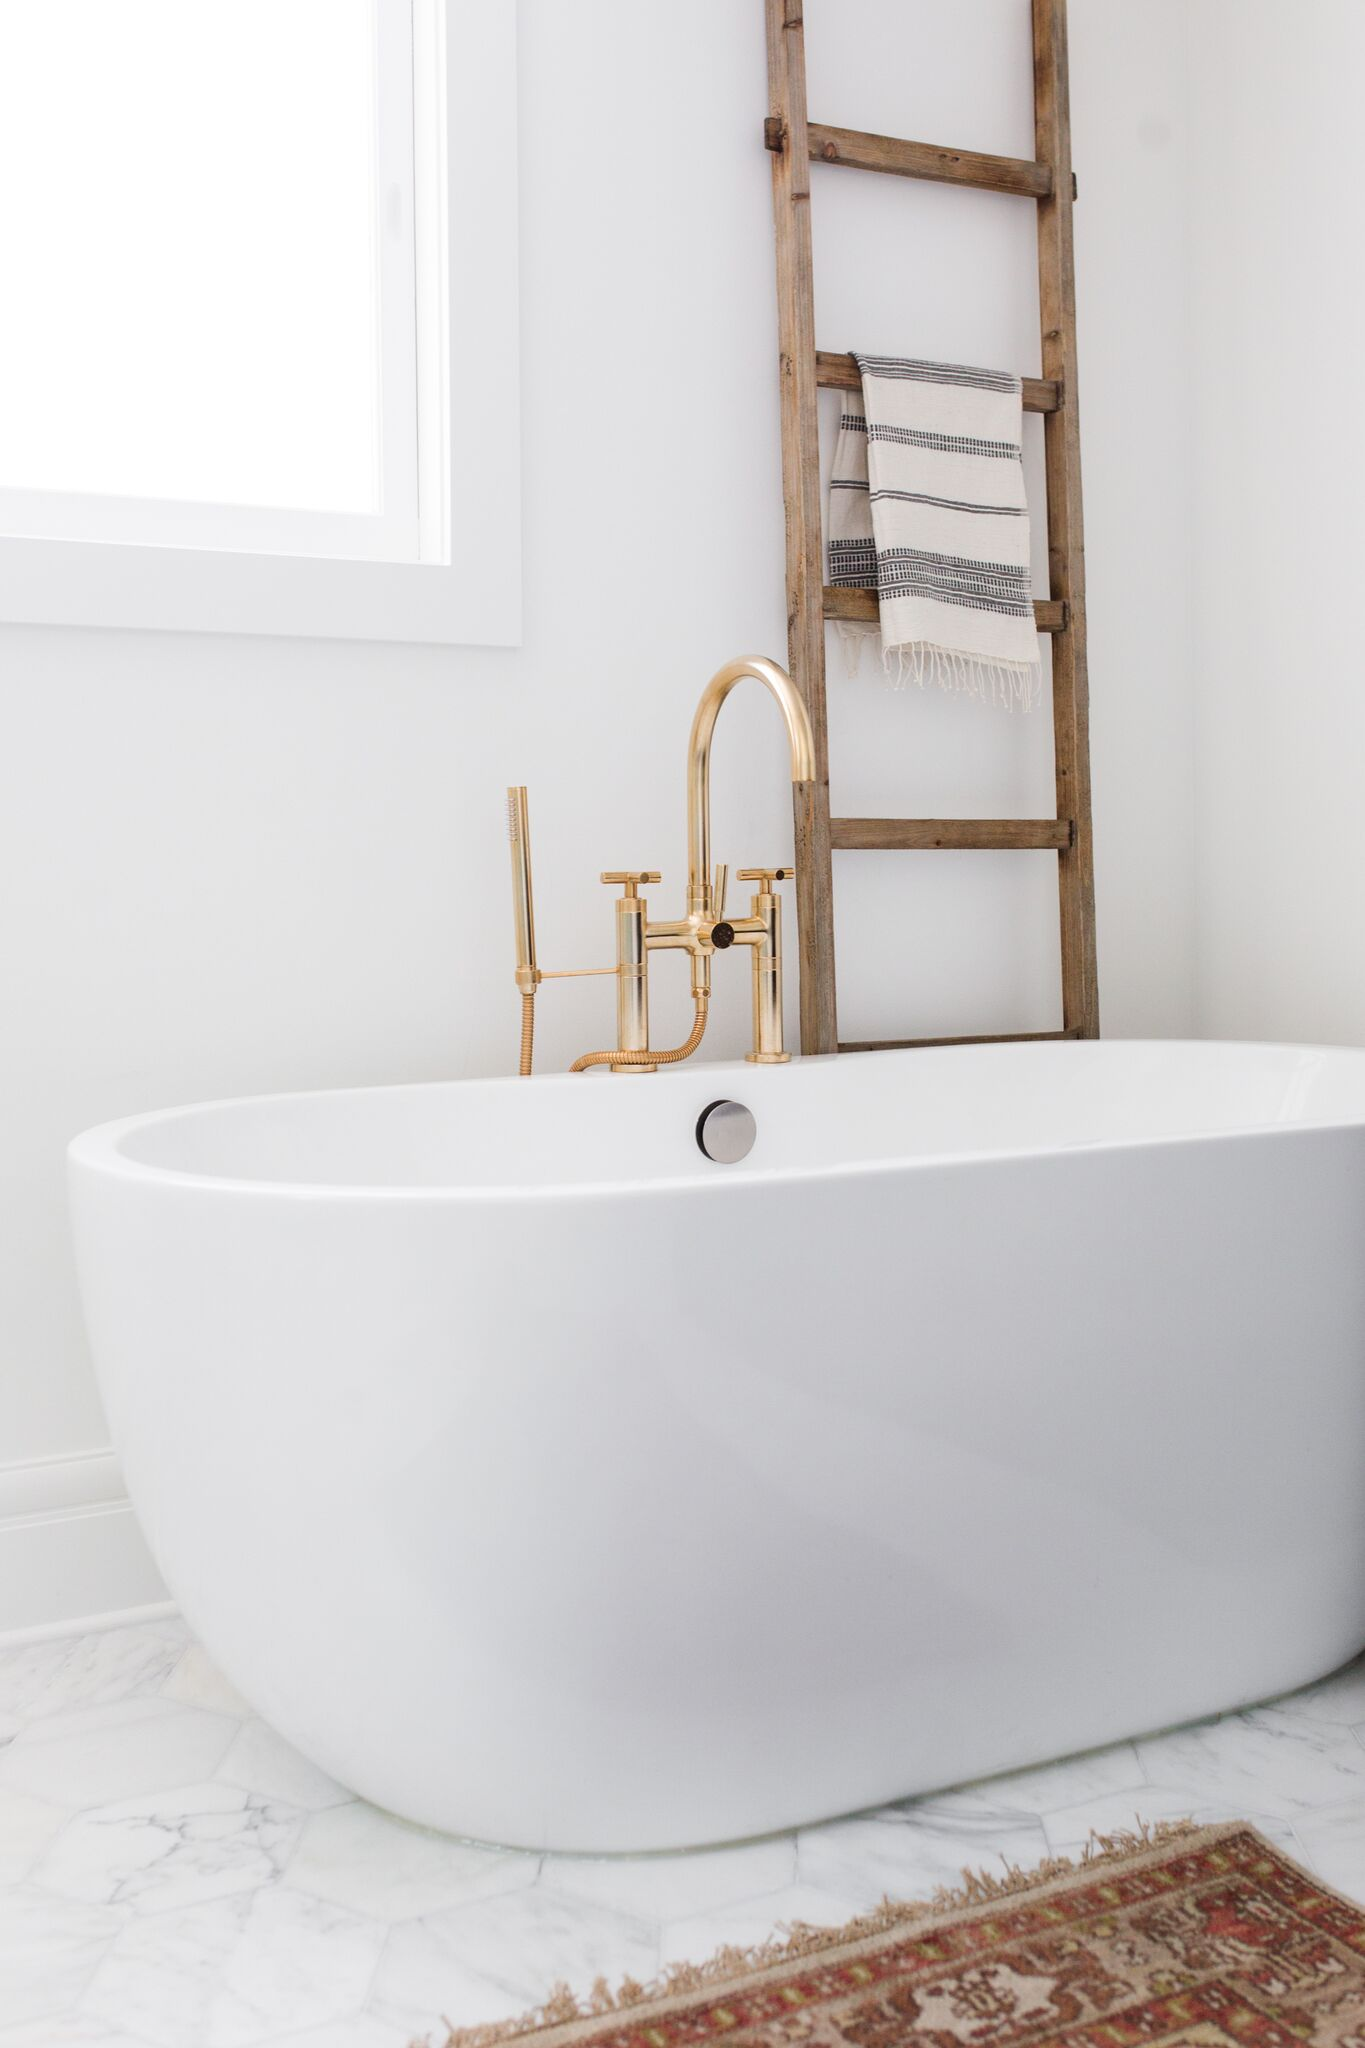 White porcelain tub in bathroom